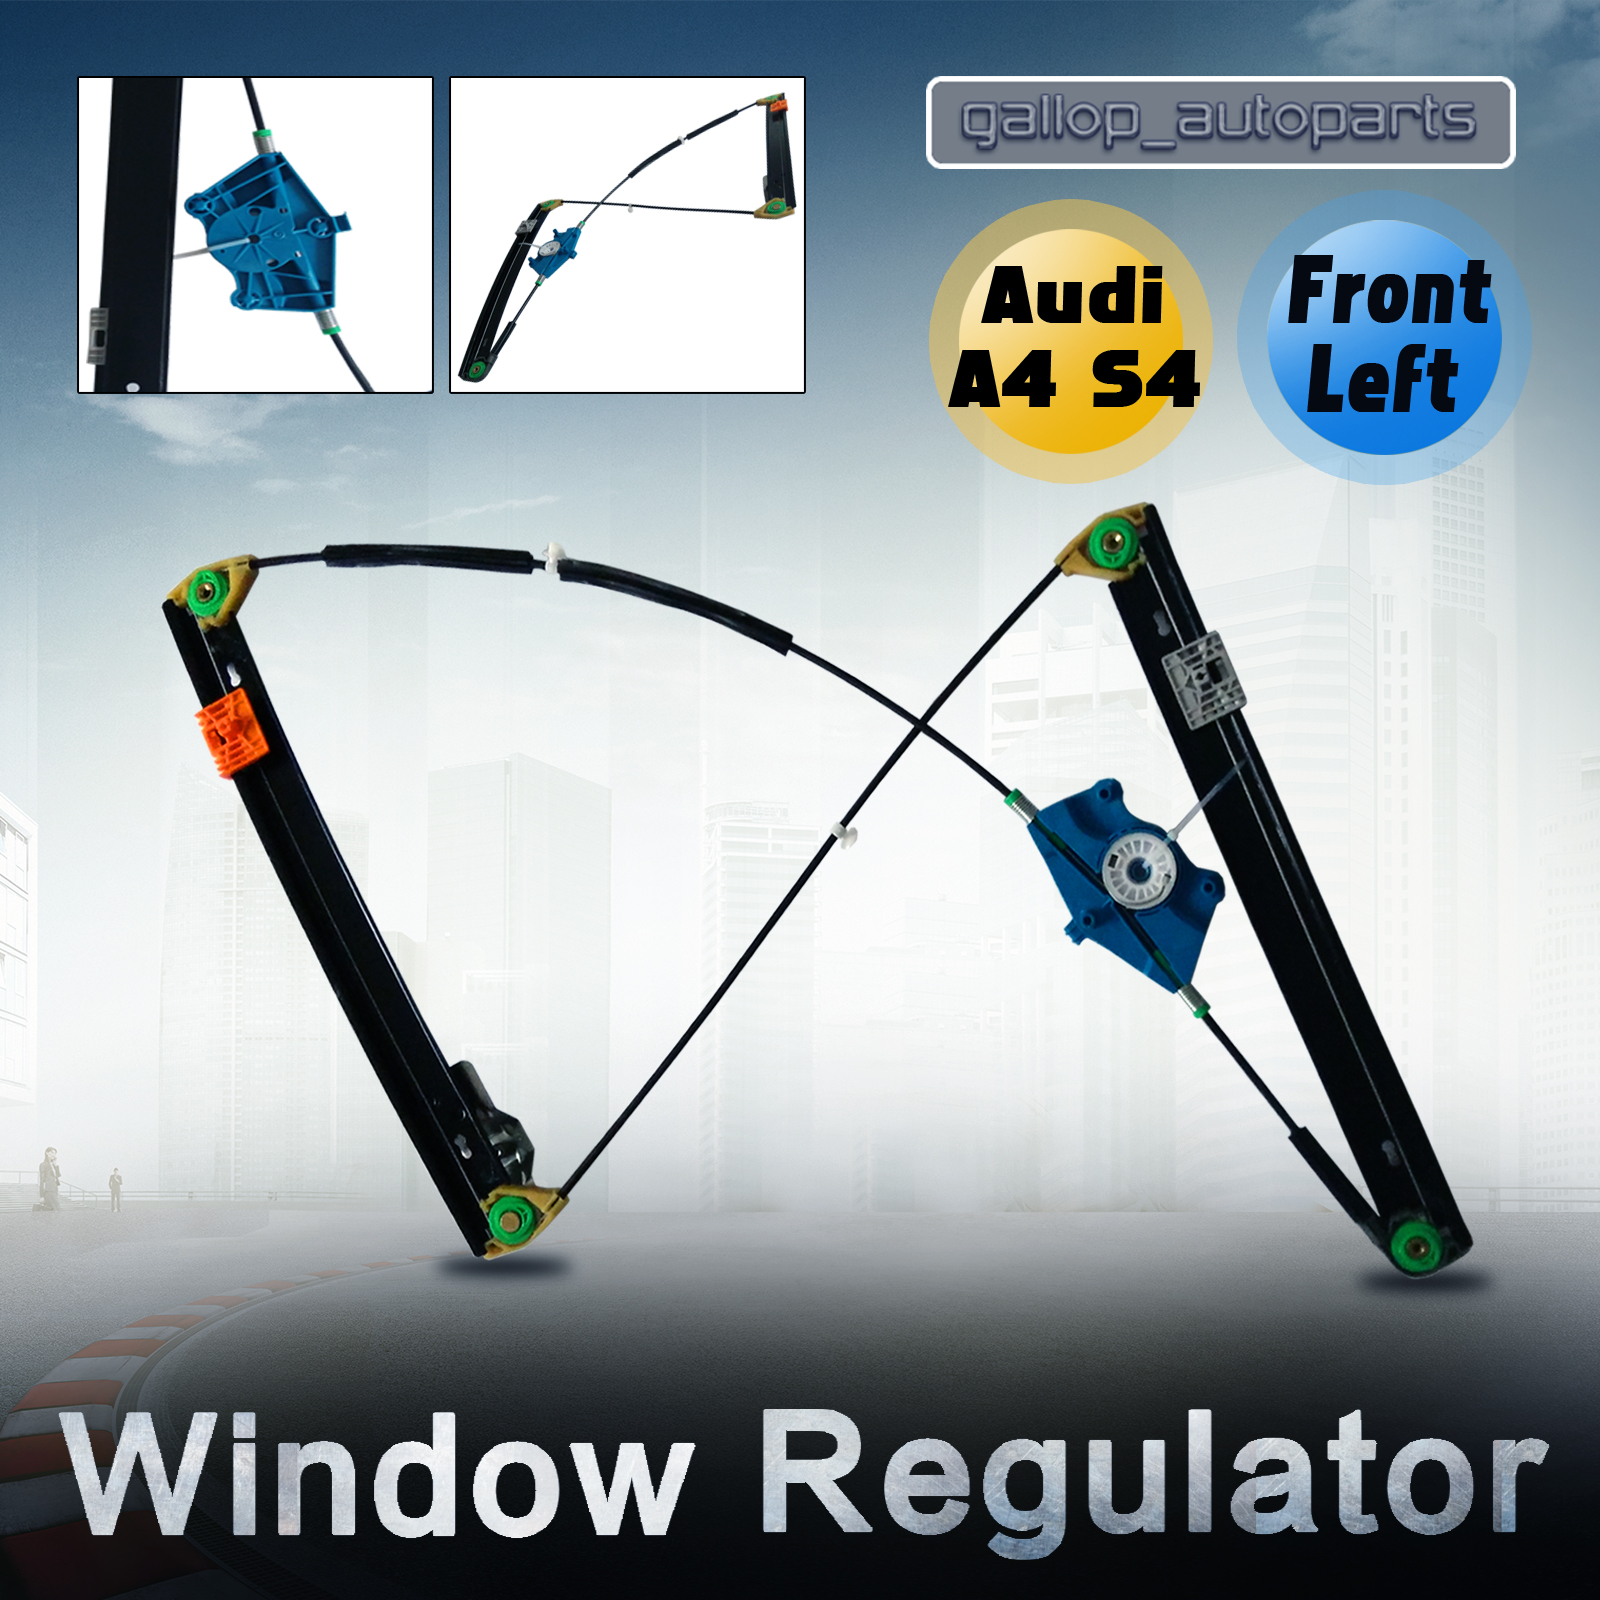 Window regulator audi a4 s4 02 08 passengers side front for 2003 audi a4 window regulator replacement